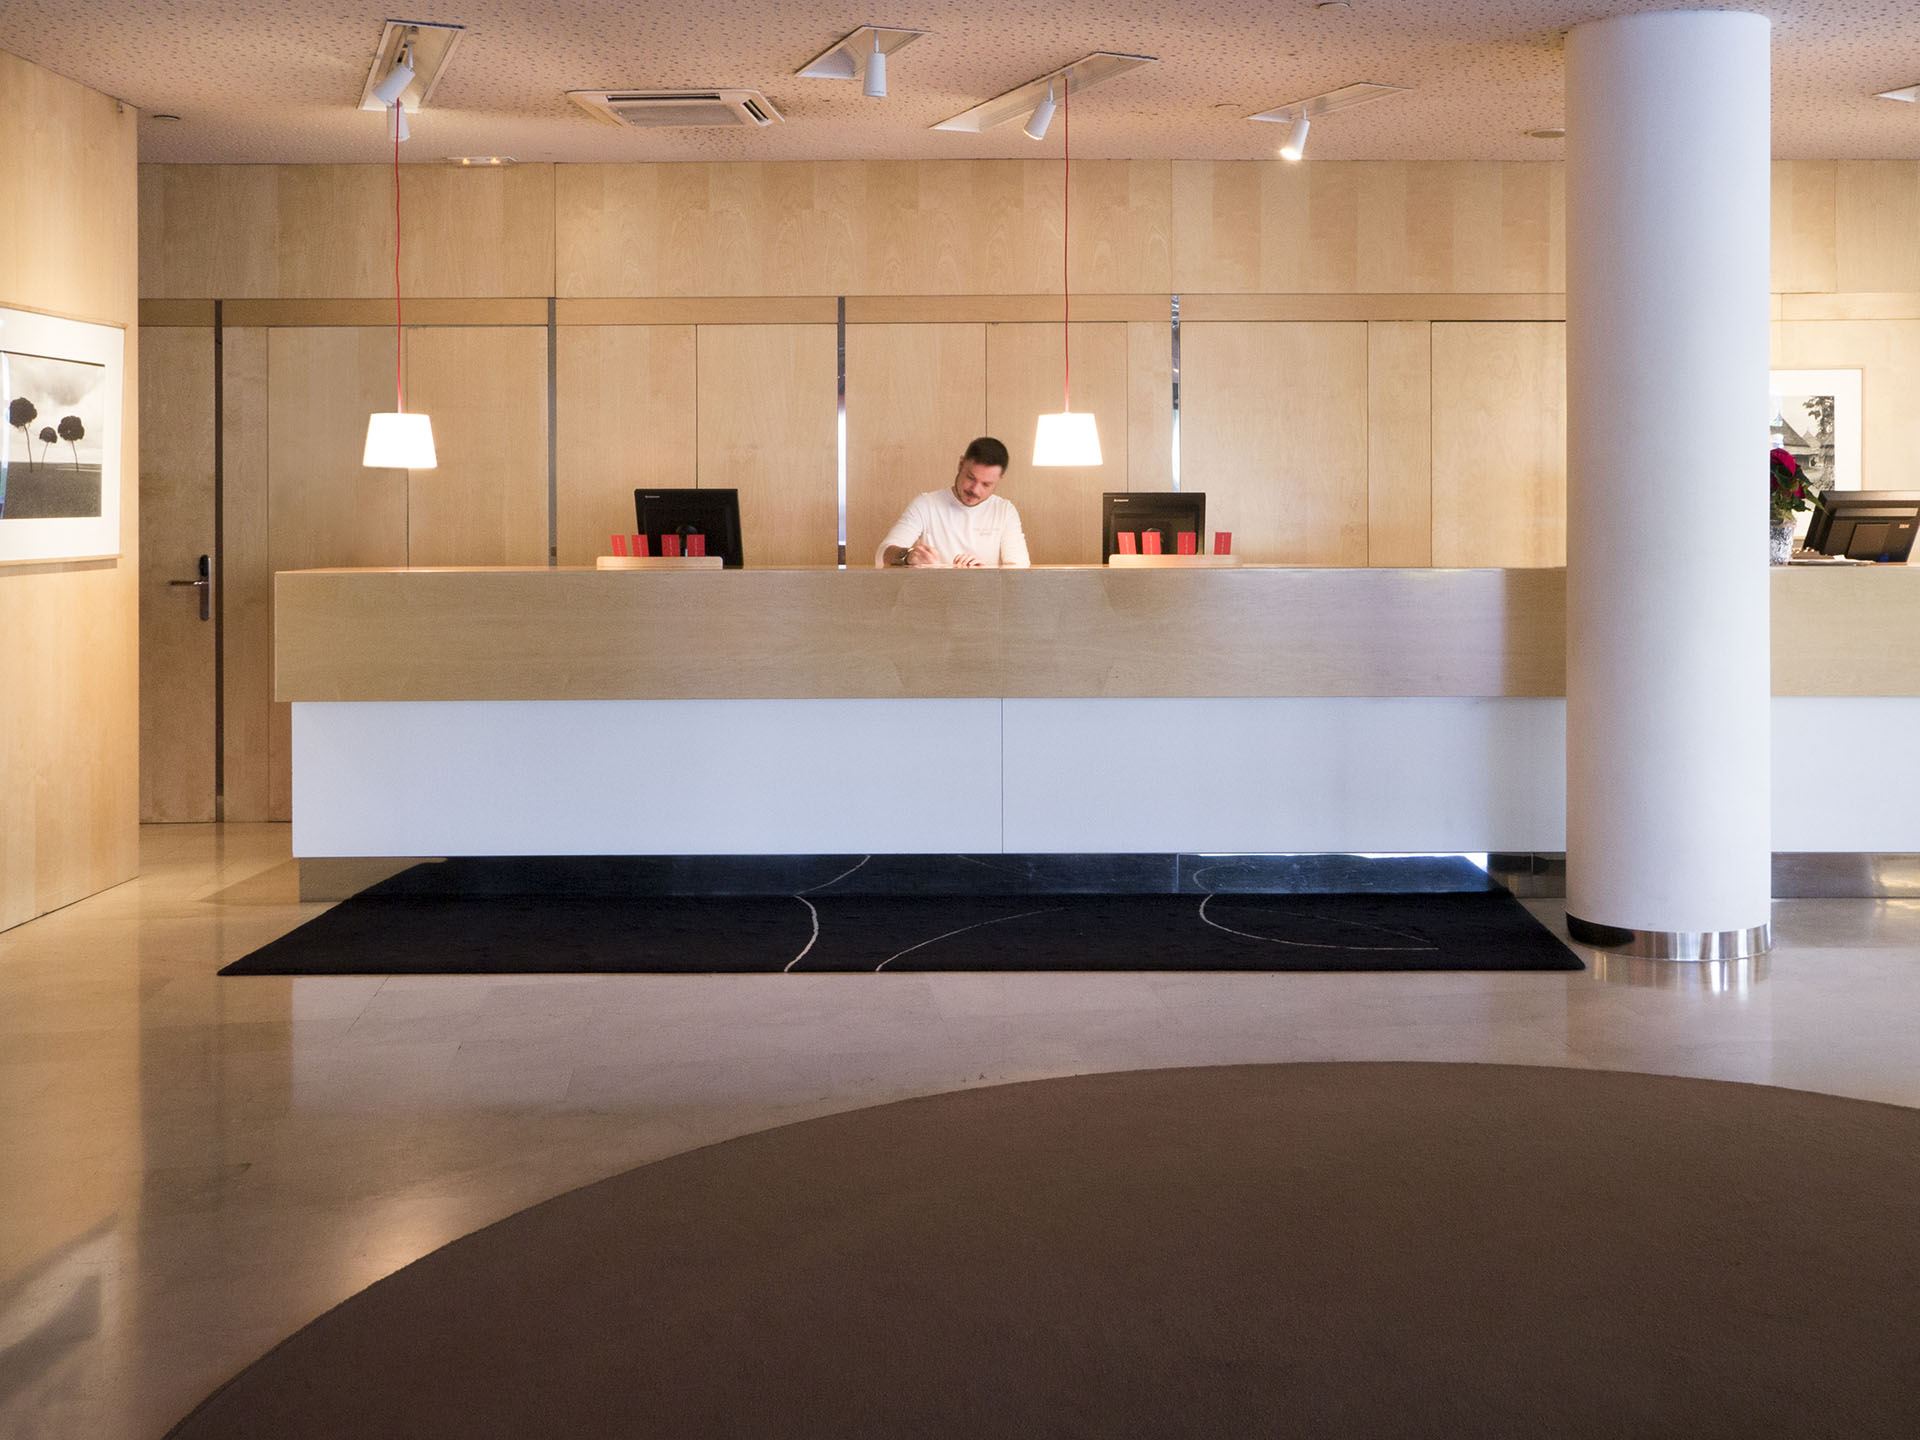 3.hotelsantcugat-reception